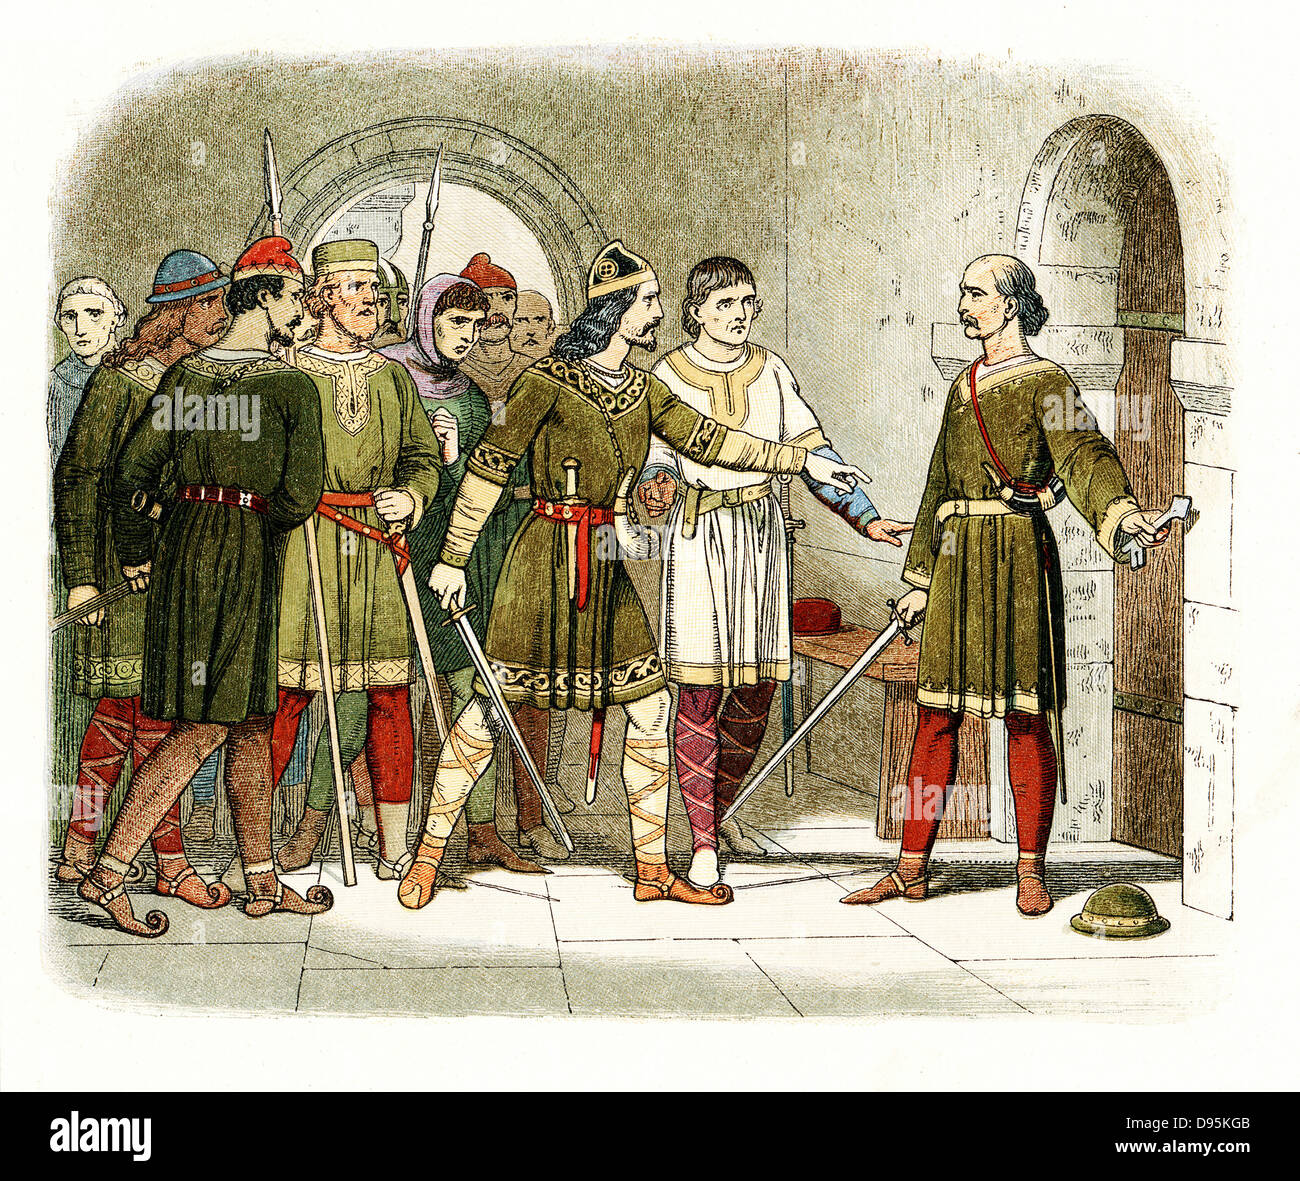 William de Breteuil defending the treasury at Winchester against Henry I (1068-1135) who seized the crown on death - Stock Image